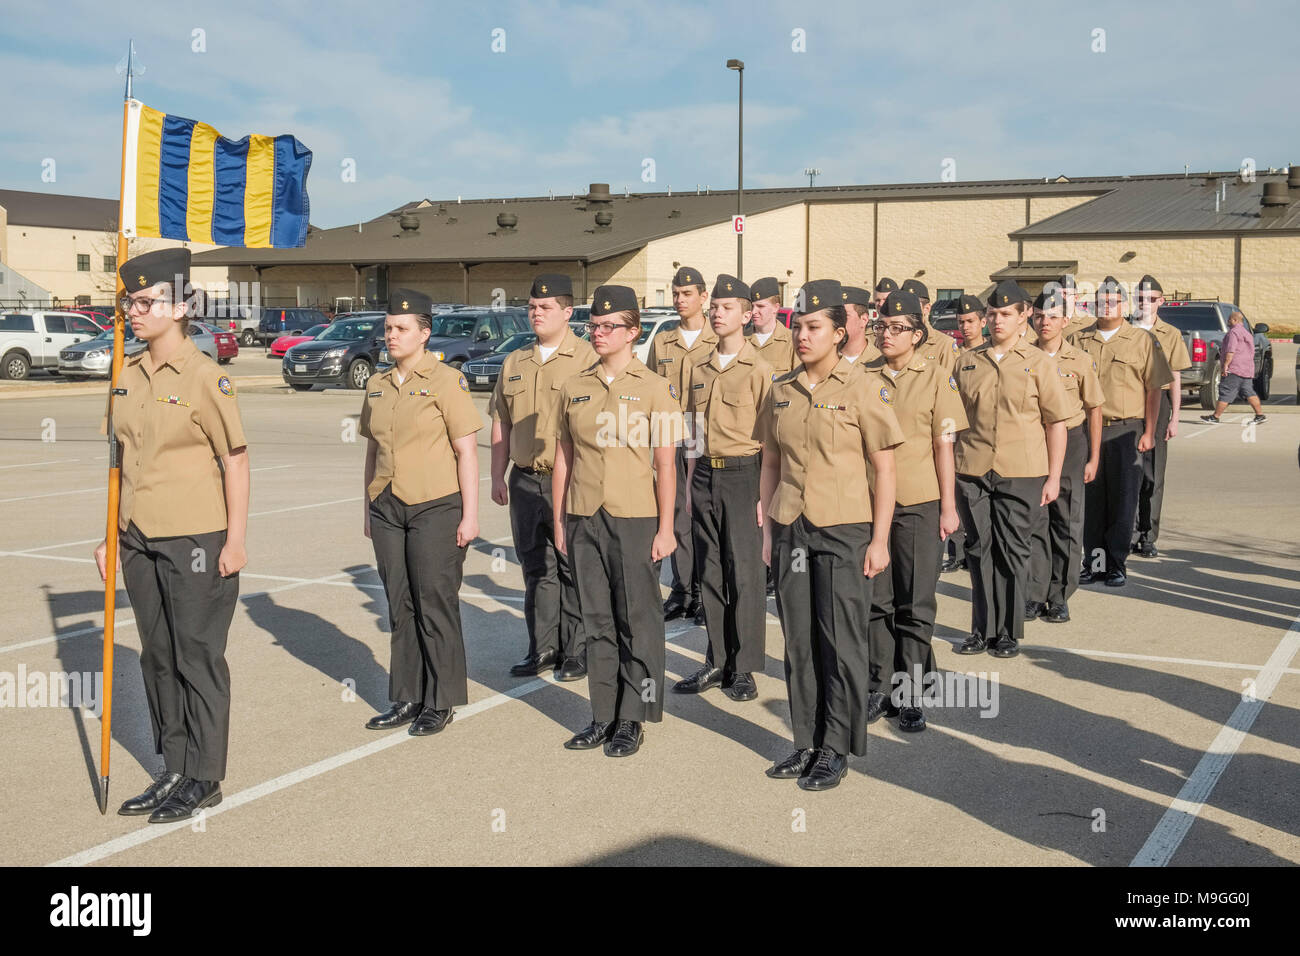 US Navy NJROTC high school cadets in marching drill formation during formal inspections in Georgetown, Texas - Stock Image